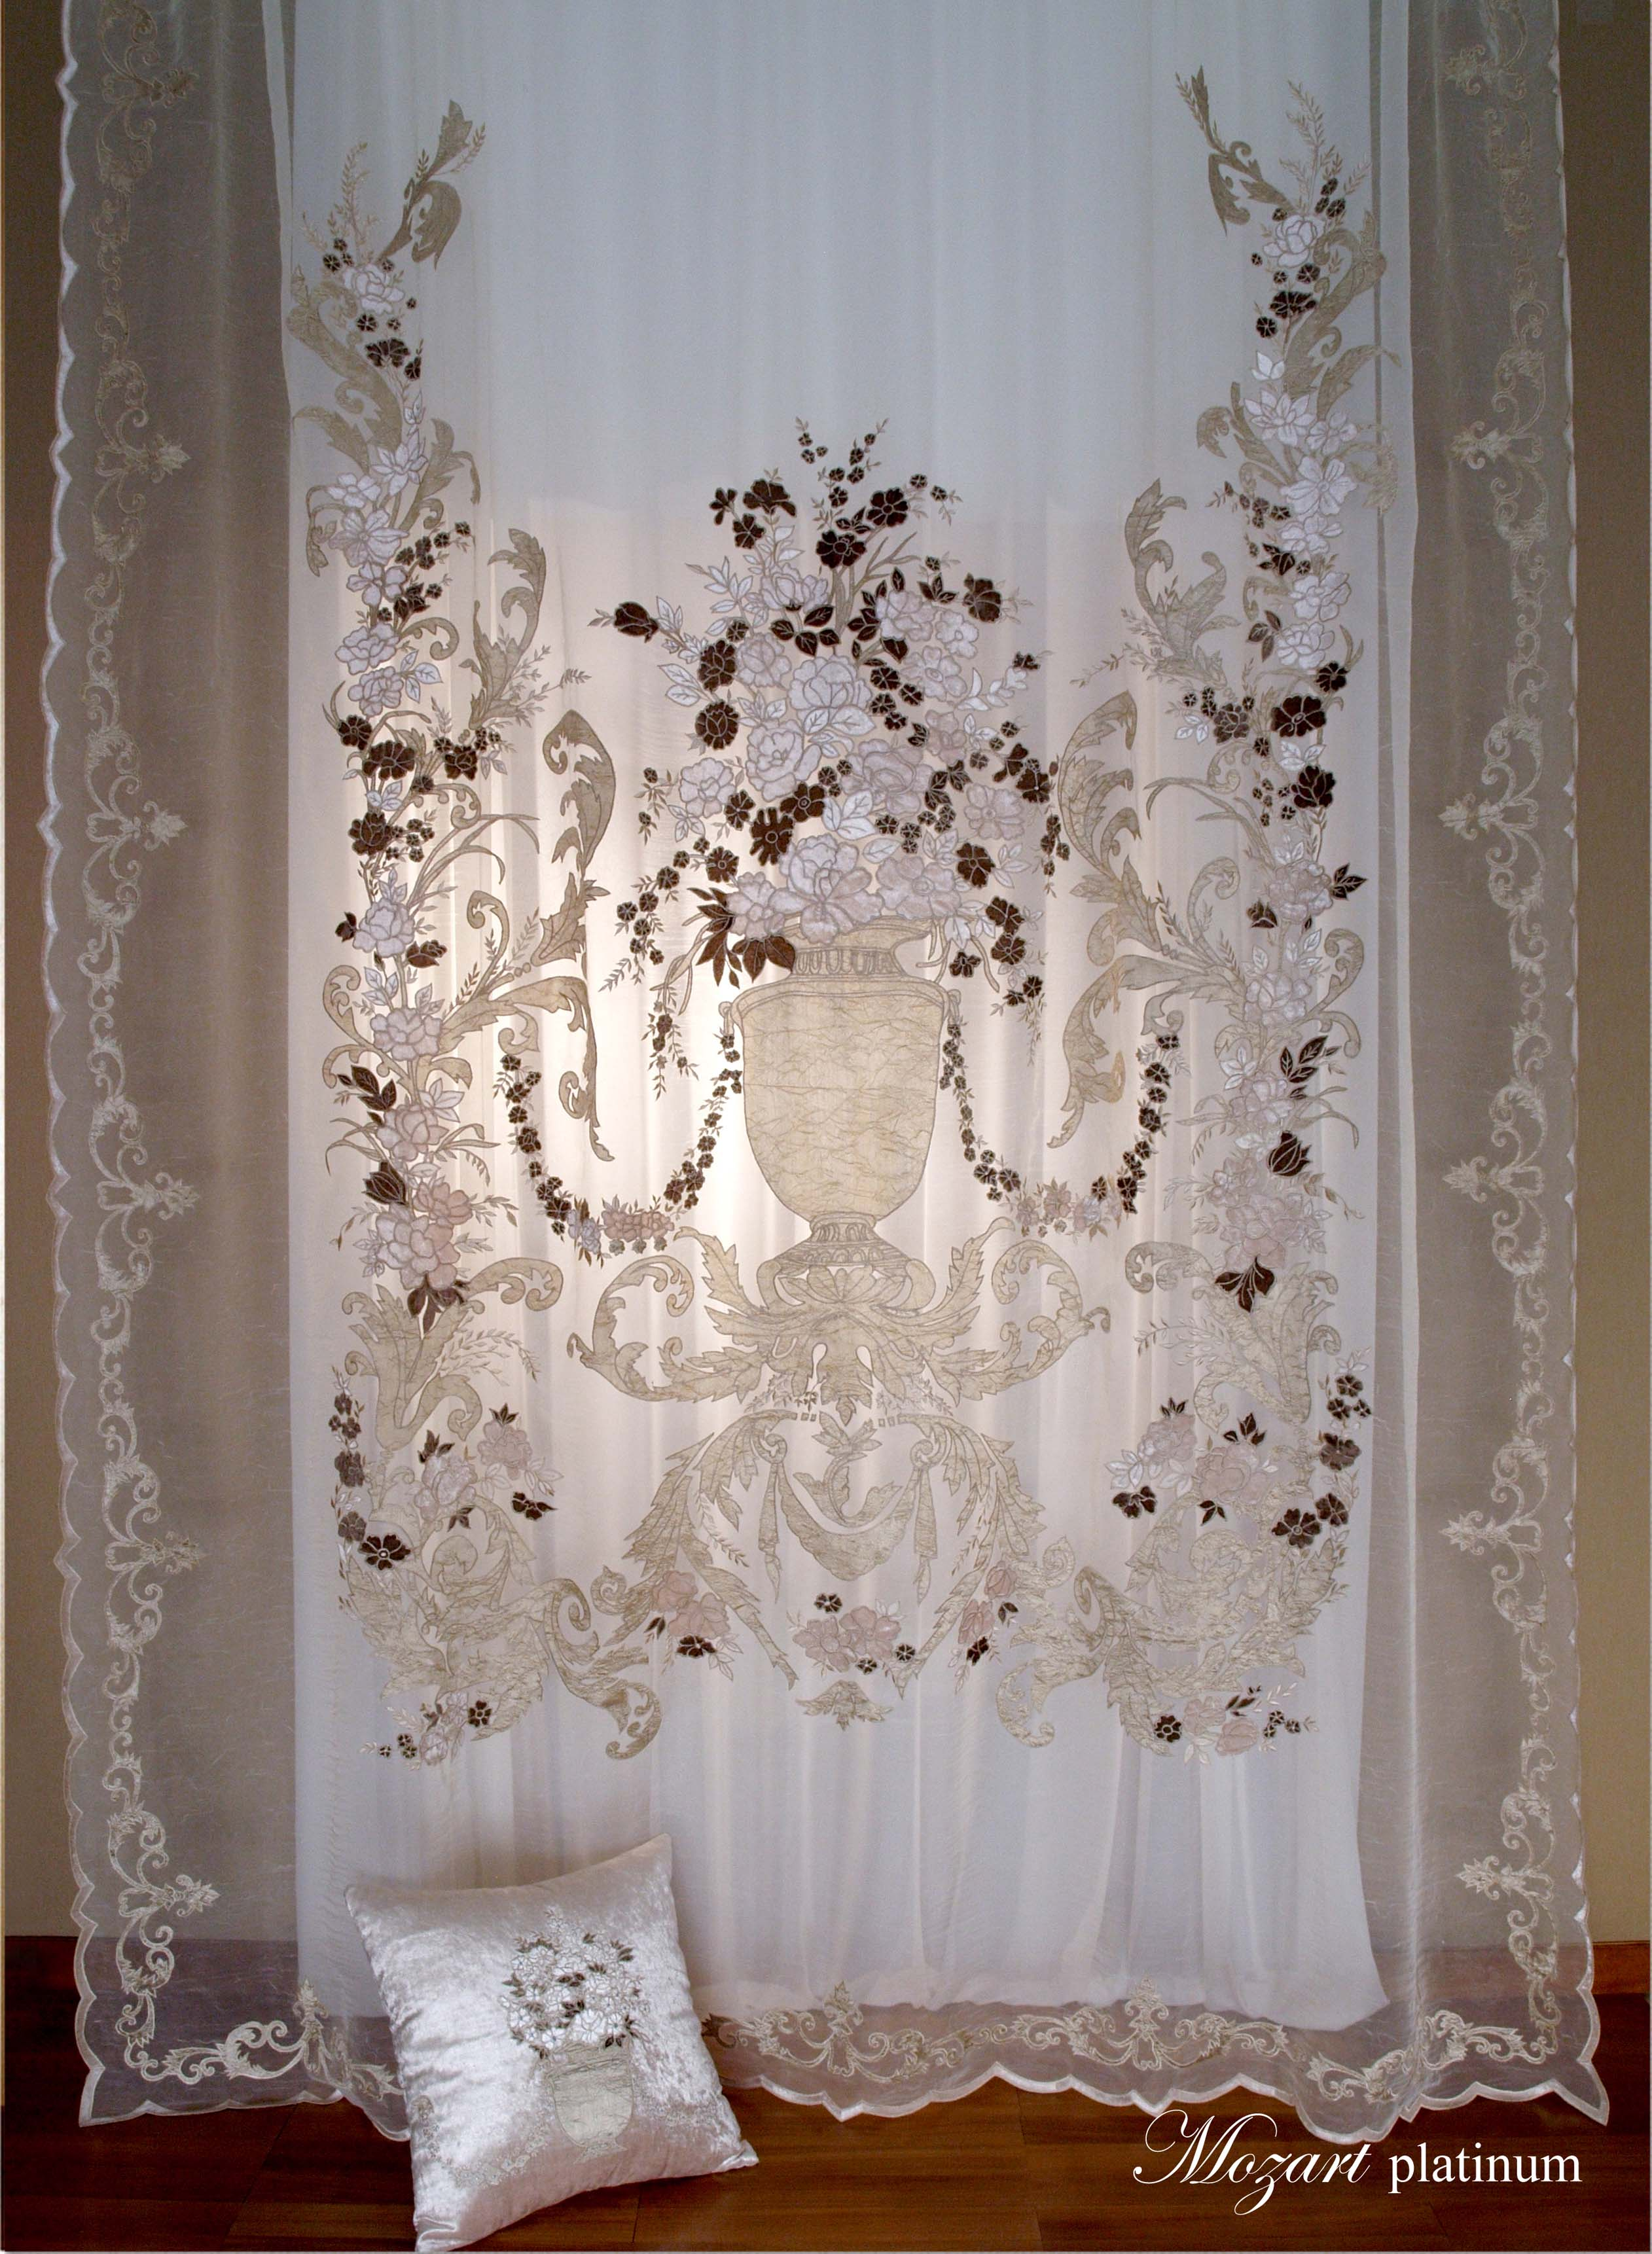 MOZART luxury curtain